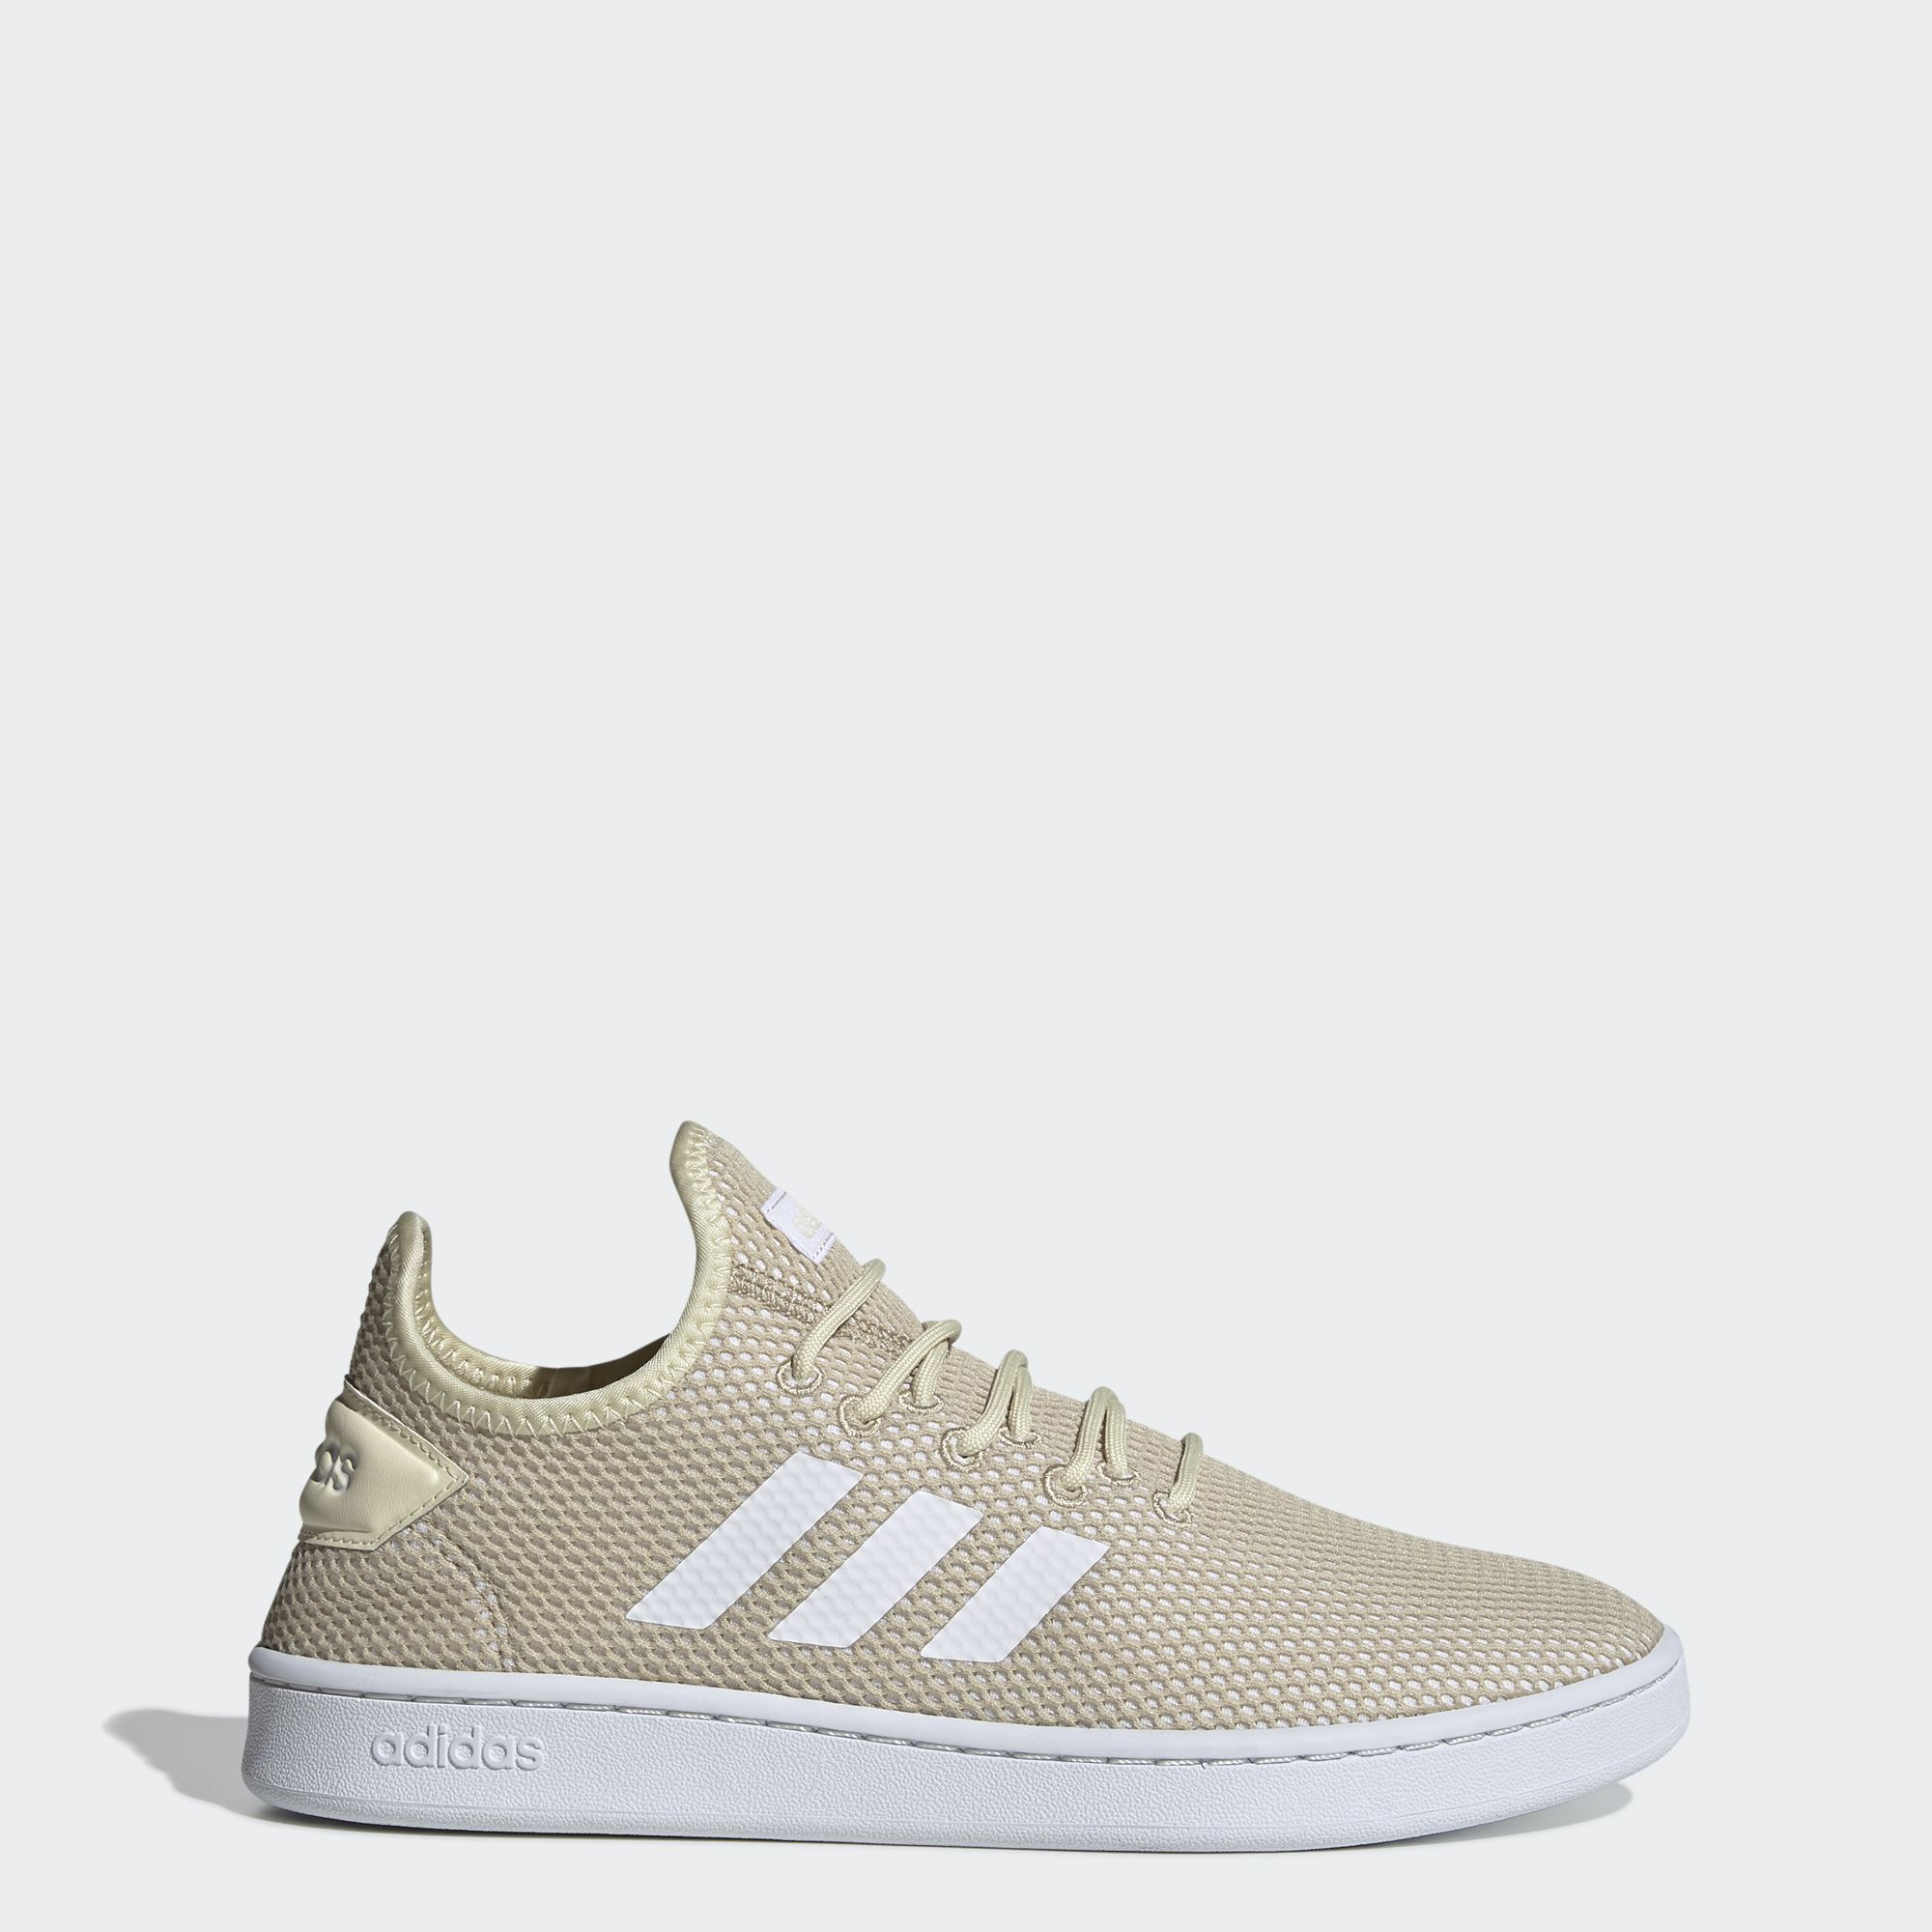 adidas tennis shoes online